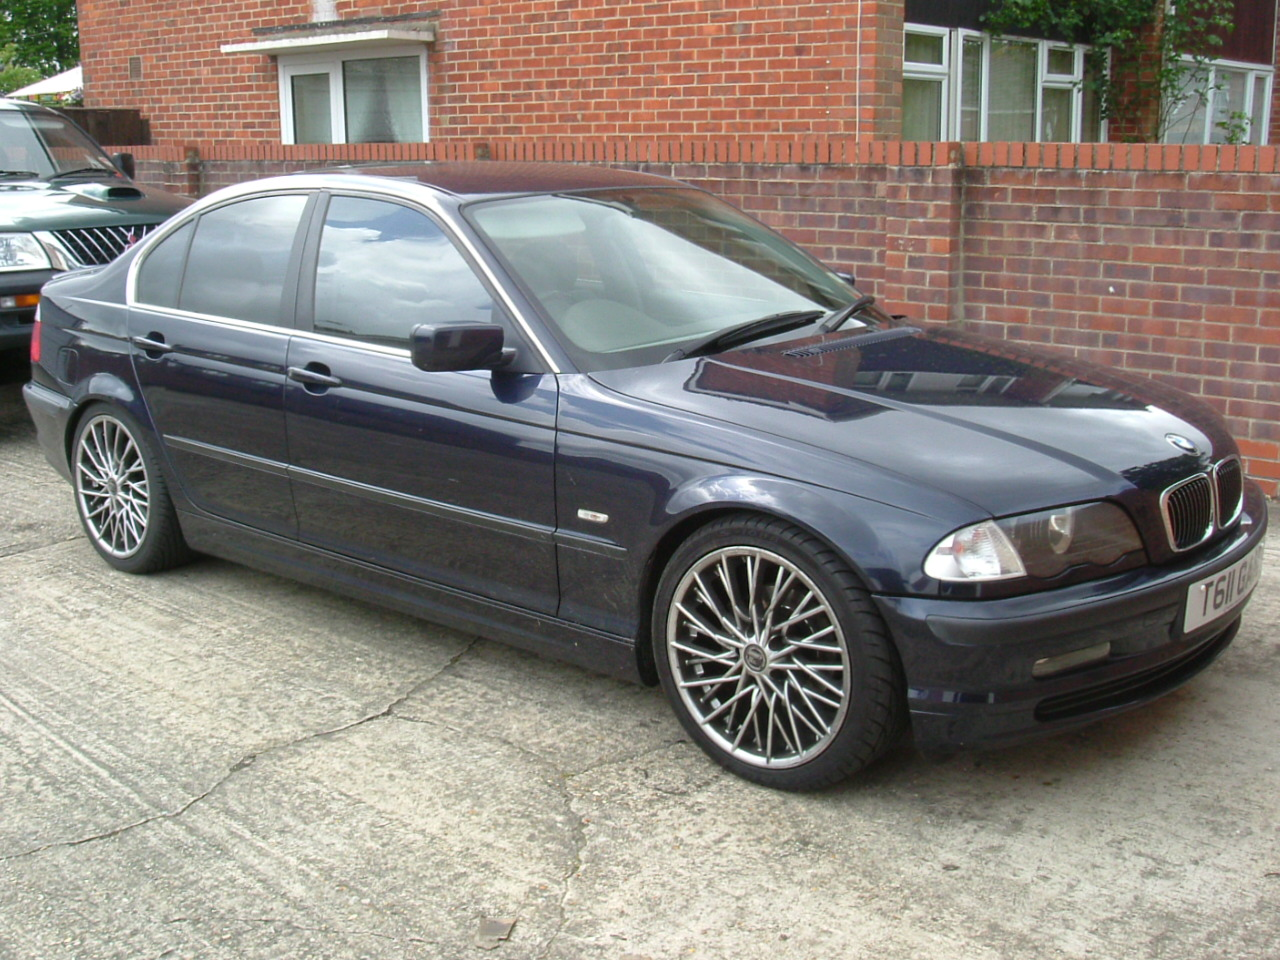 BMW 3 series 330xi 2000 photo - 4